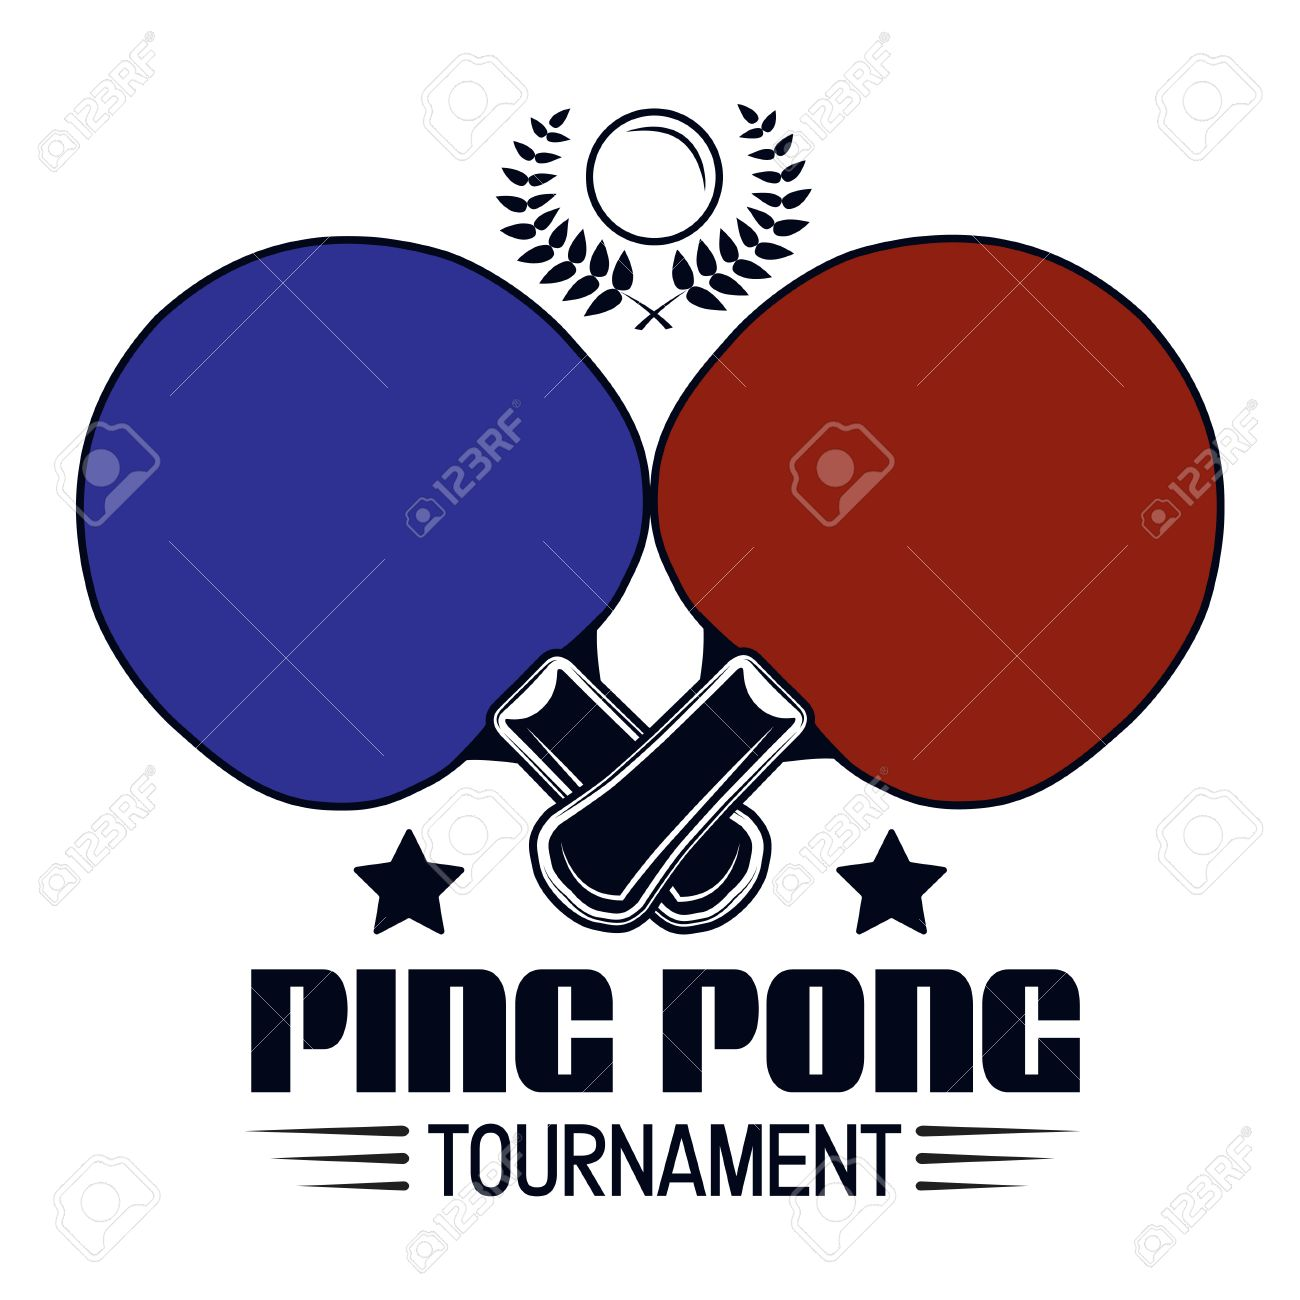 Logo Design Ping Pong Tournament For Printing Press And On T Shirts